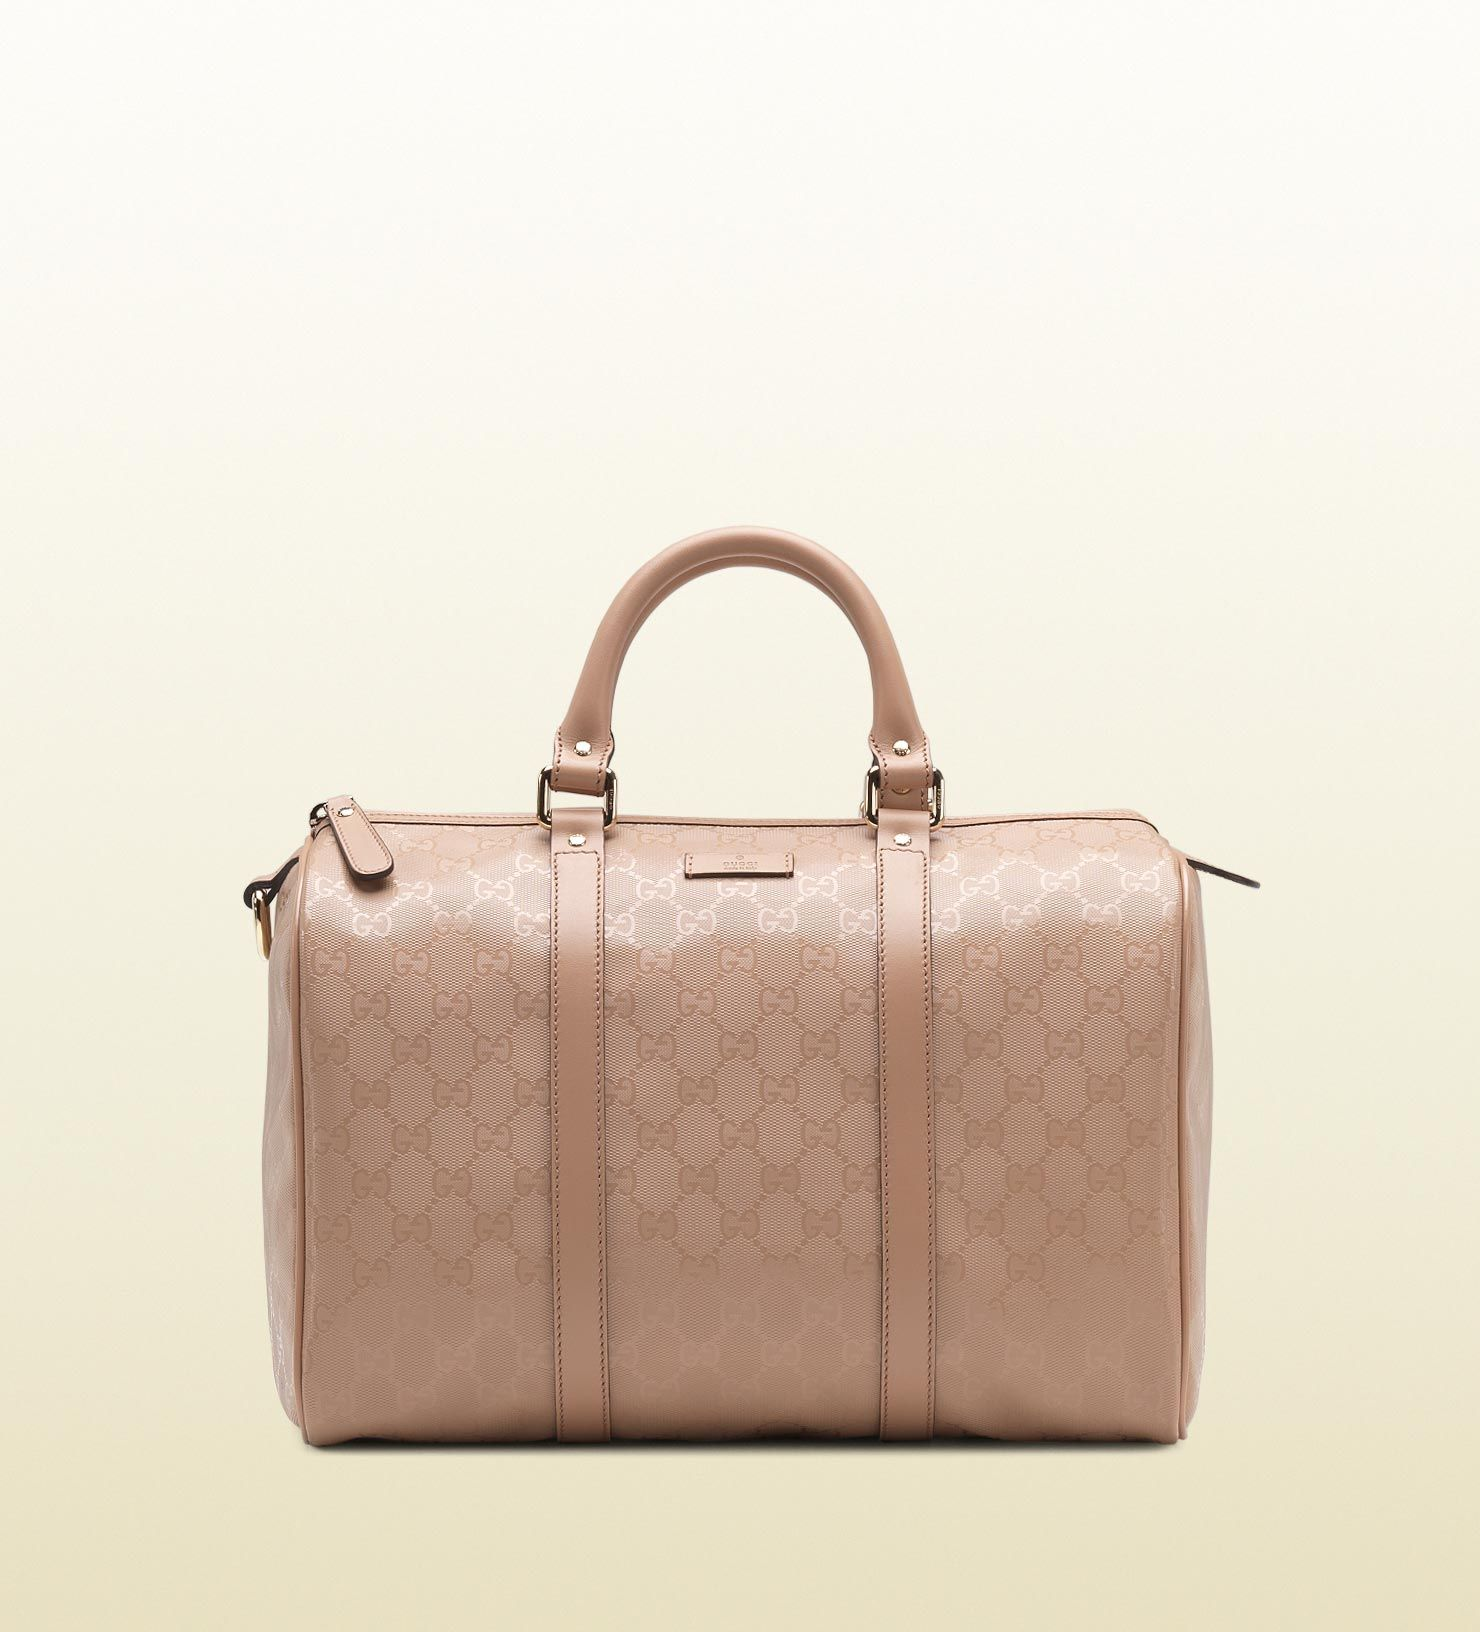 80532e94ce42 I need this- joy guccissima leather boston bag | the fig leaf ...